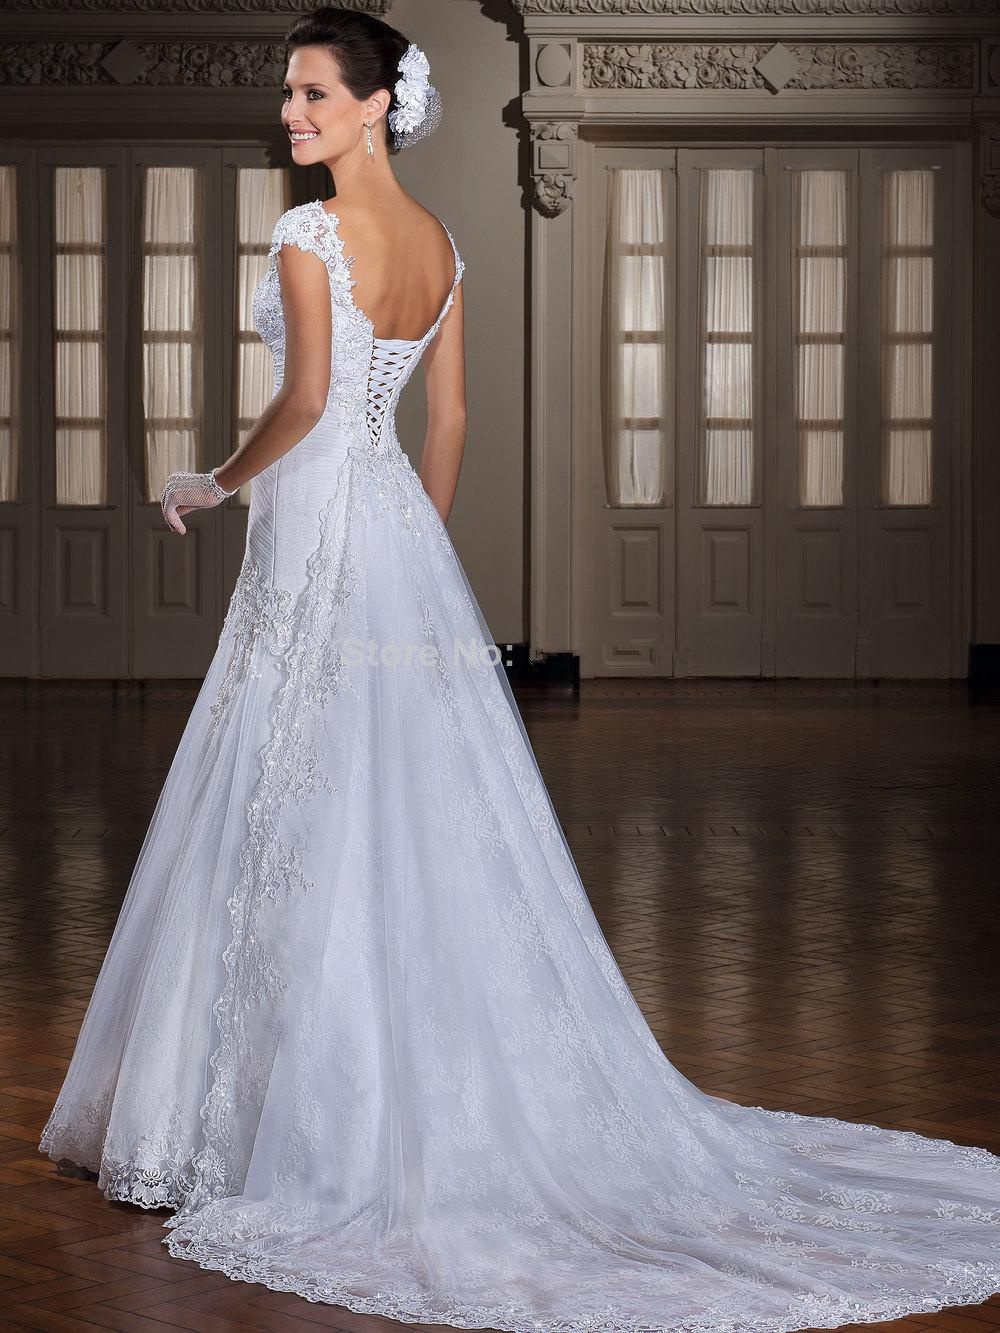 99a4104541f New Design 2015 Traditional Wedding Dress Sexy A line Luxury Tulle With Appliques  Special Occasion Bride Dress Formal Dress-in Wedding Dresses from Weddings  ...